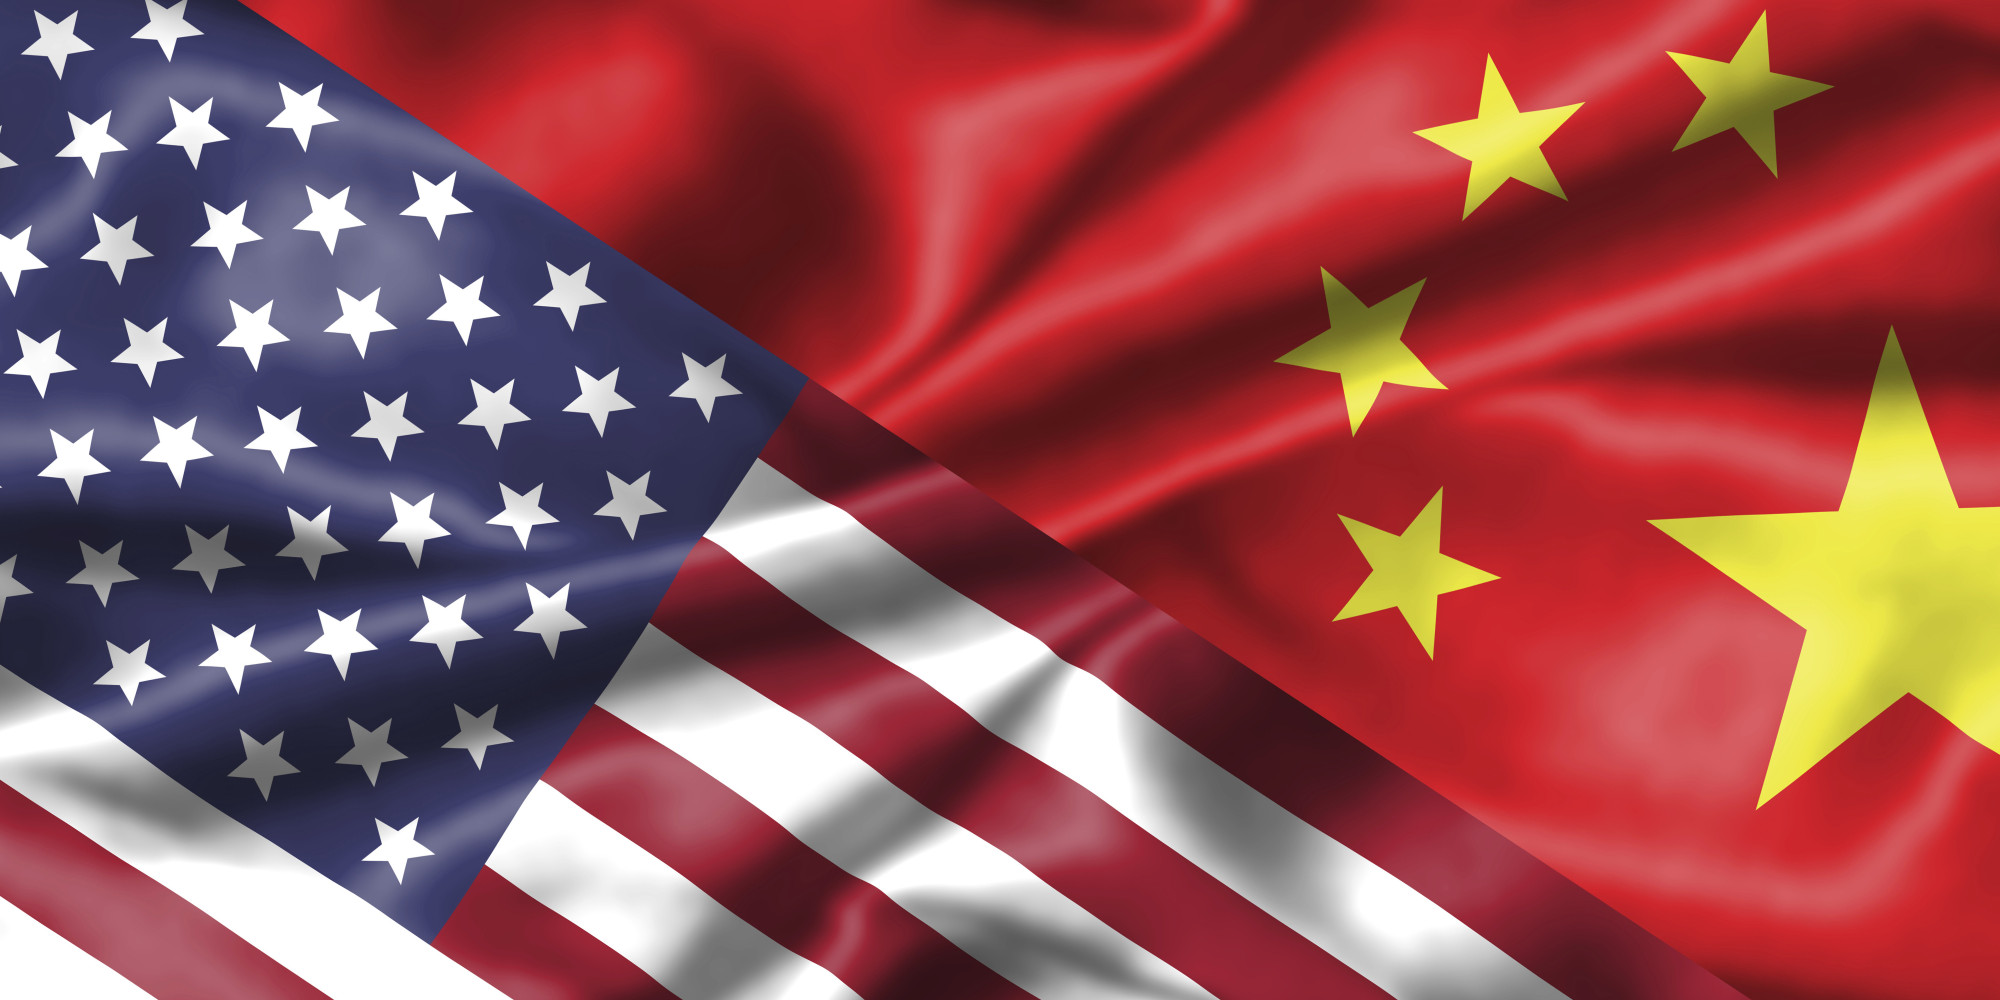 american china relationship with vietnam